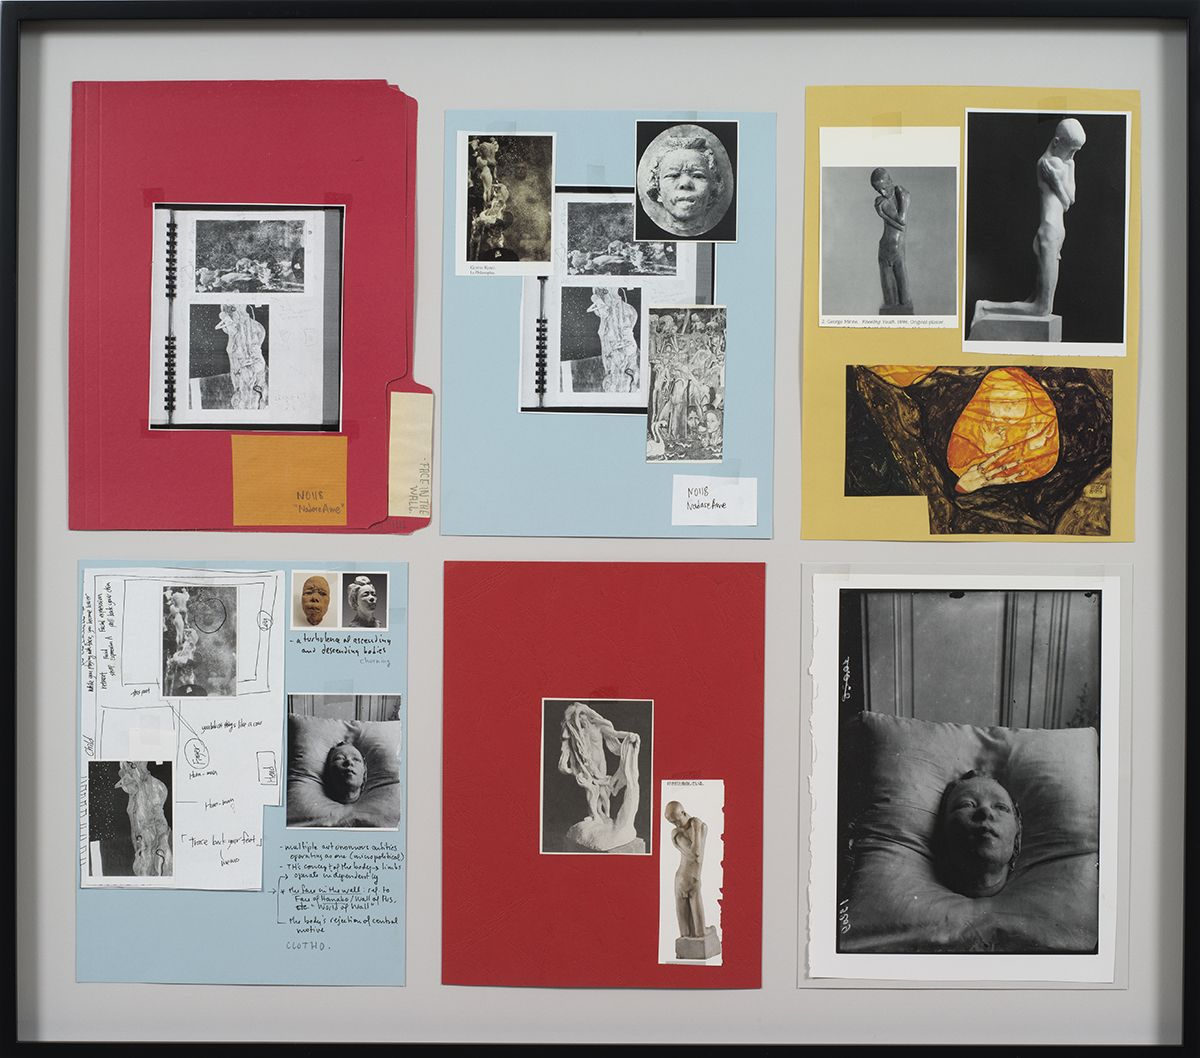 Ankoku 37 (Resource folder: Face in the wall (Hanako), 2012, Collage, 27 1/4 x 31 x 1 1/2 inches (69.2 x 78.7 x 3.8 cm)